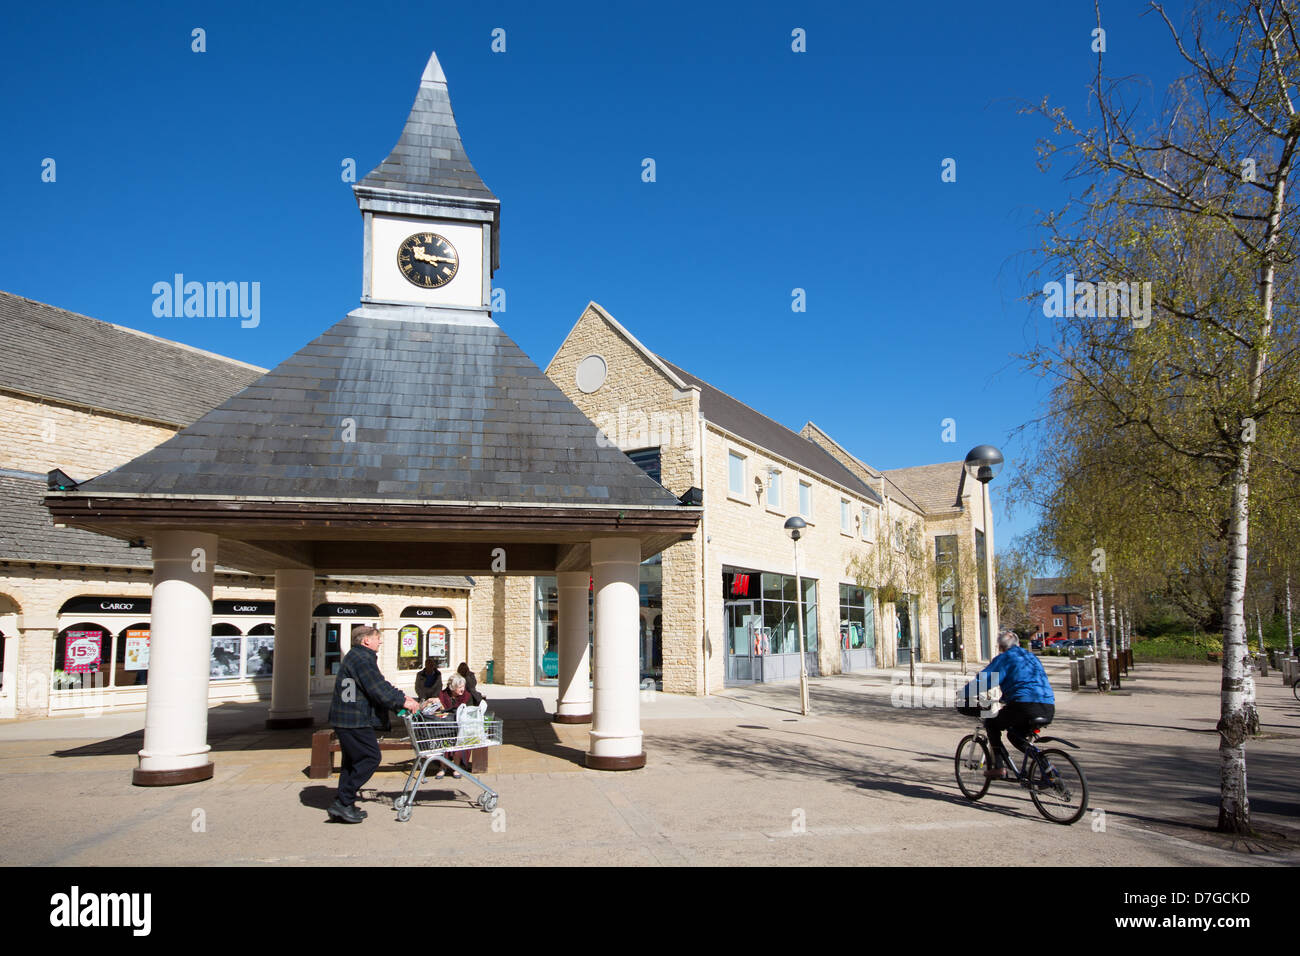 WITNEY, OXFORDSHIRE, UK. The Woolgate Shopping Centre in the town centre. 2013. - Stock Image